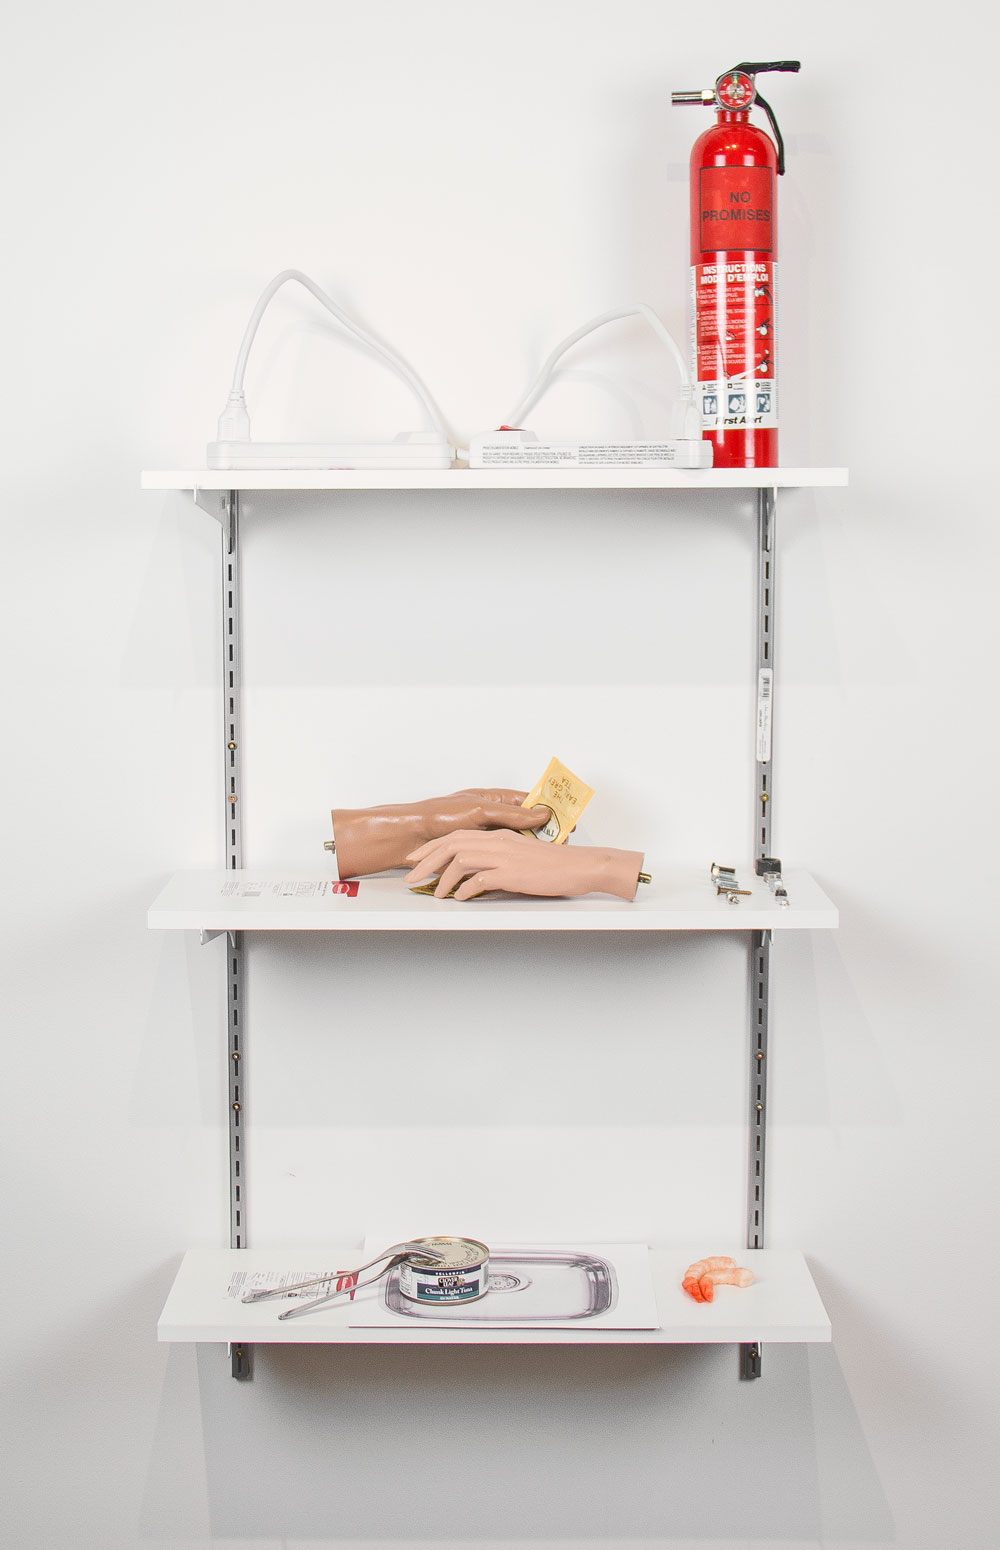 Tibi Tibi Neuspiel The Difference between Art and MusicMixed media, found objects, Various sizes 2013